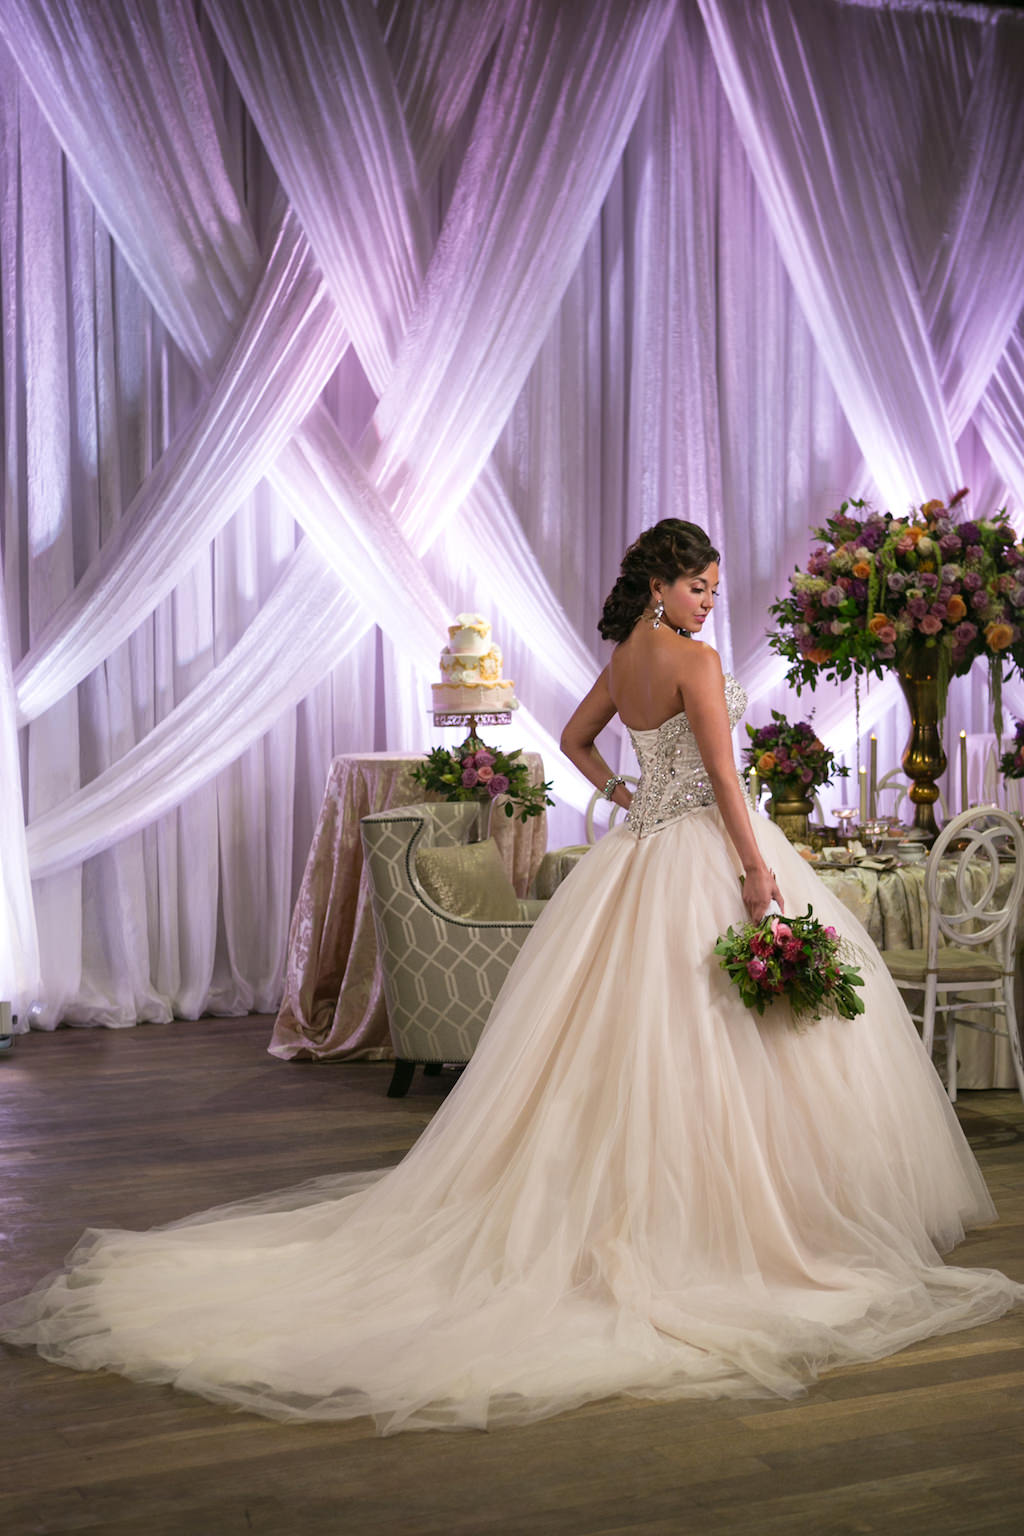 French Inspired Marie Antoinette Wedding Reception Bridal Portrait with Tropical Greenery Fan Style Bridal Bouquet and Large Pearl Drop Earring and Lace Collar | Ballgown Wedding Dress from Tampa Bay Bridal Shop Truly Forever Bridal | Tampa Bay Wedding Photographer Carrie Wildes Photography